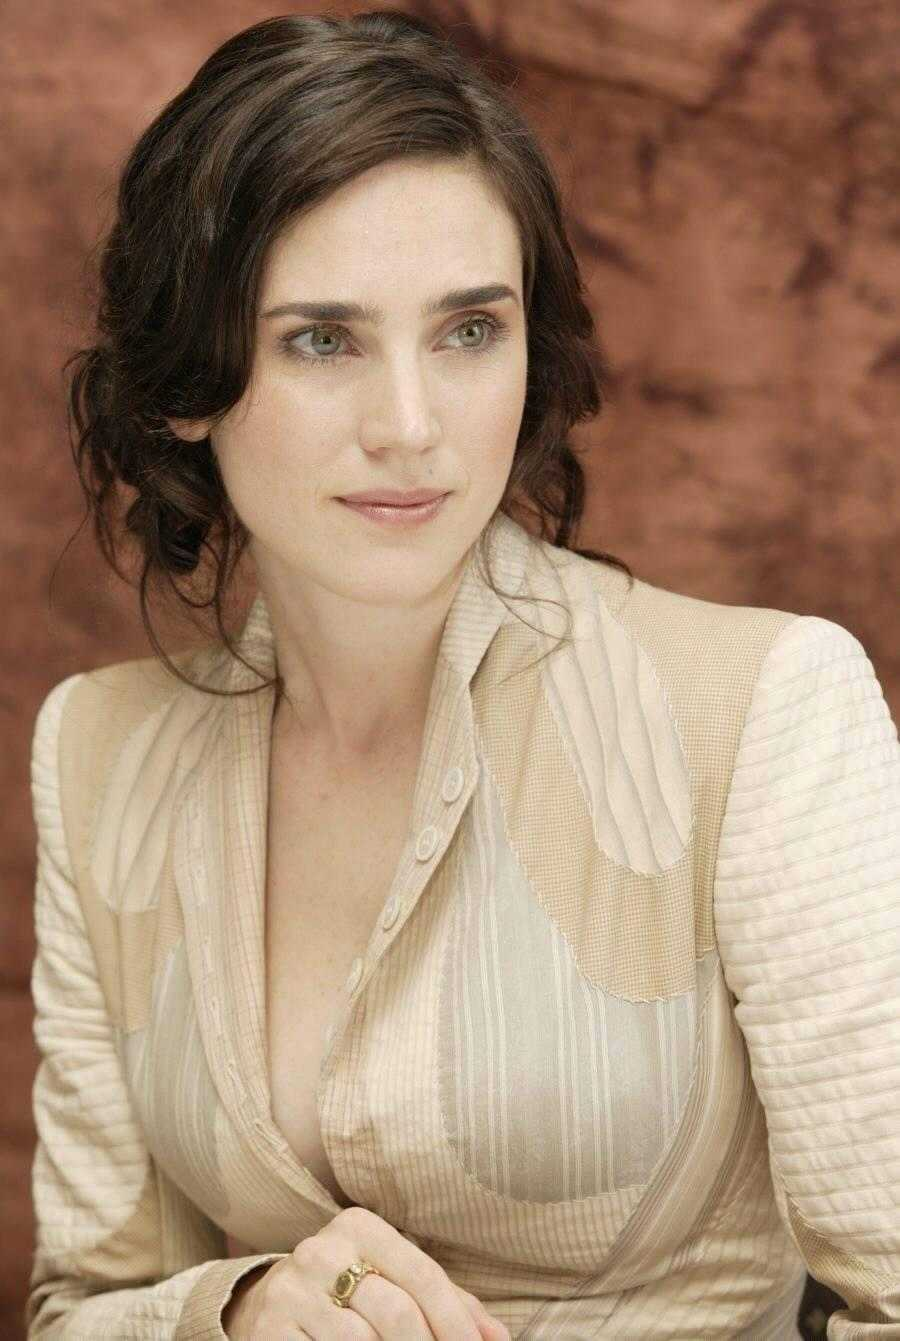 49 Hottest Jennifer Connelly Boobs Pictures Will Bring Big ...